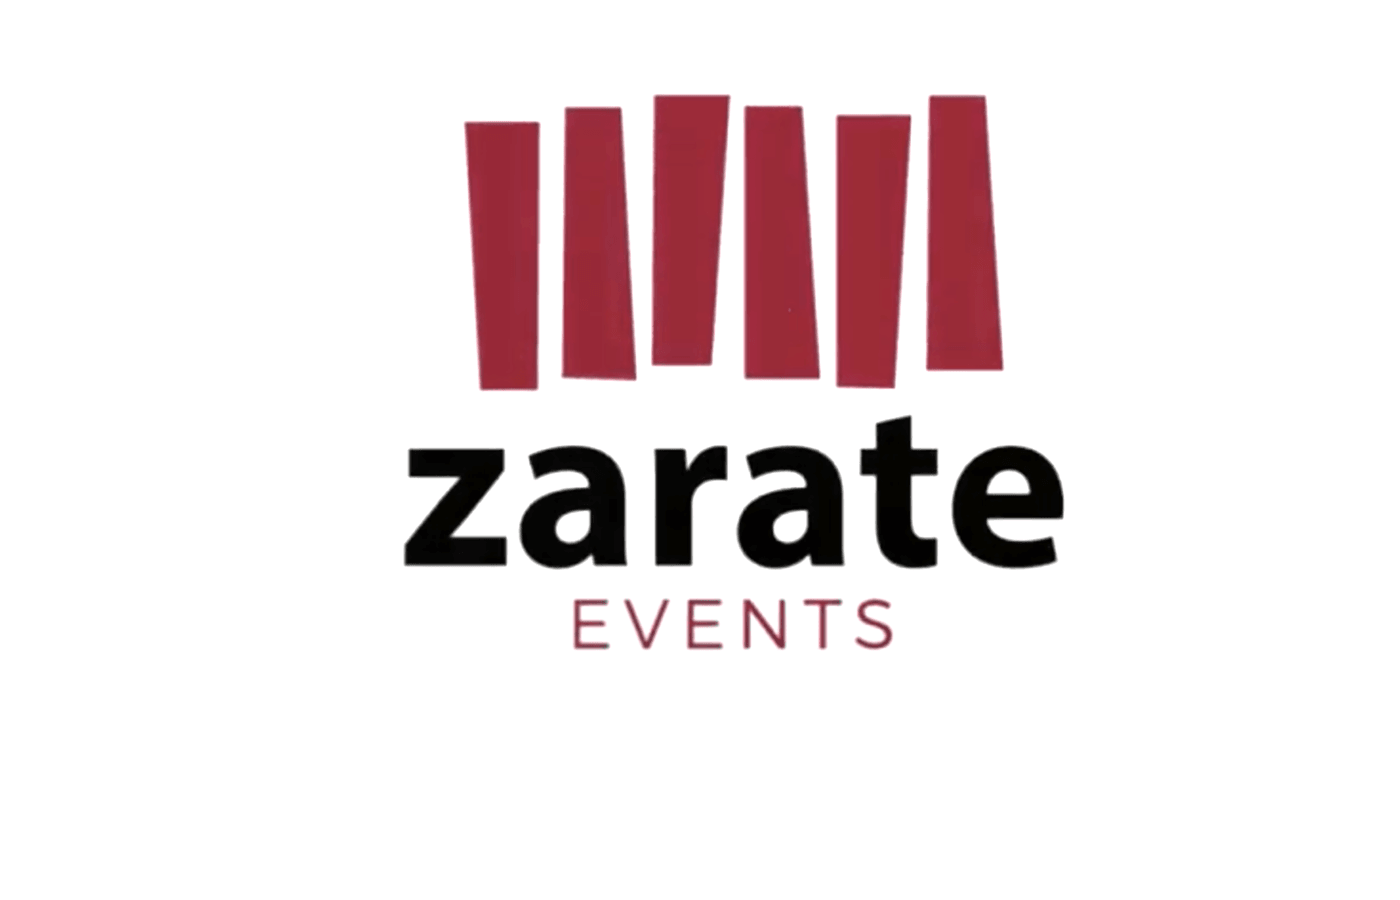 Zarate Events Fondo